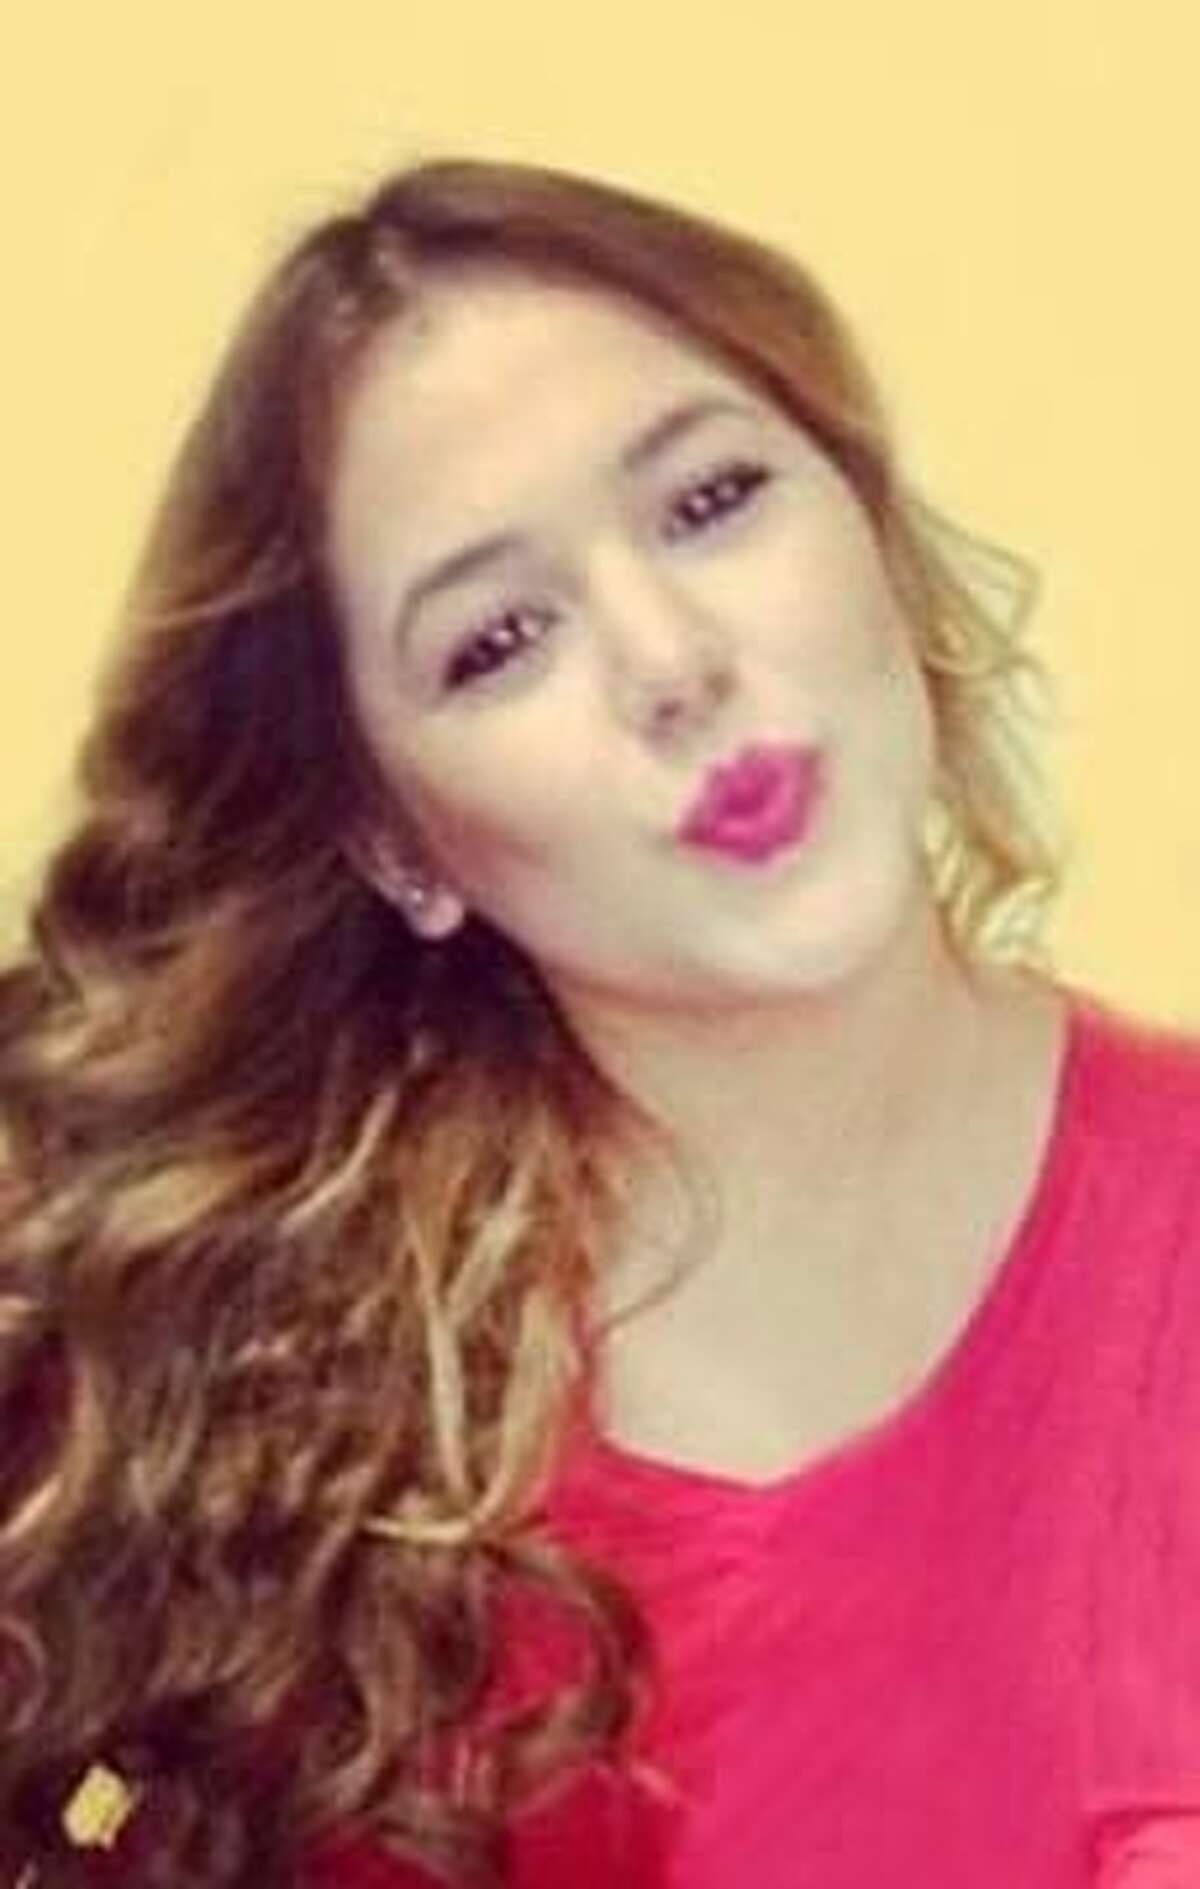 Anna Golden Gonzalez, 18, is shown in this obituary photo. Gonzalez died in Nuevo Laredo, Mexico, over the weekend from